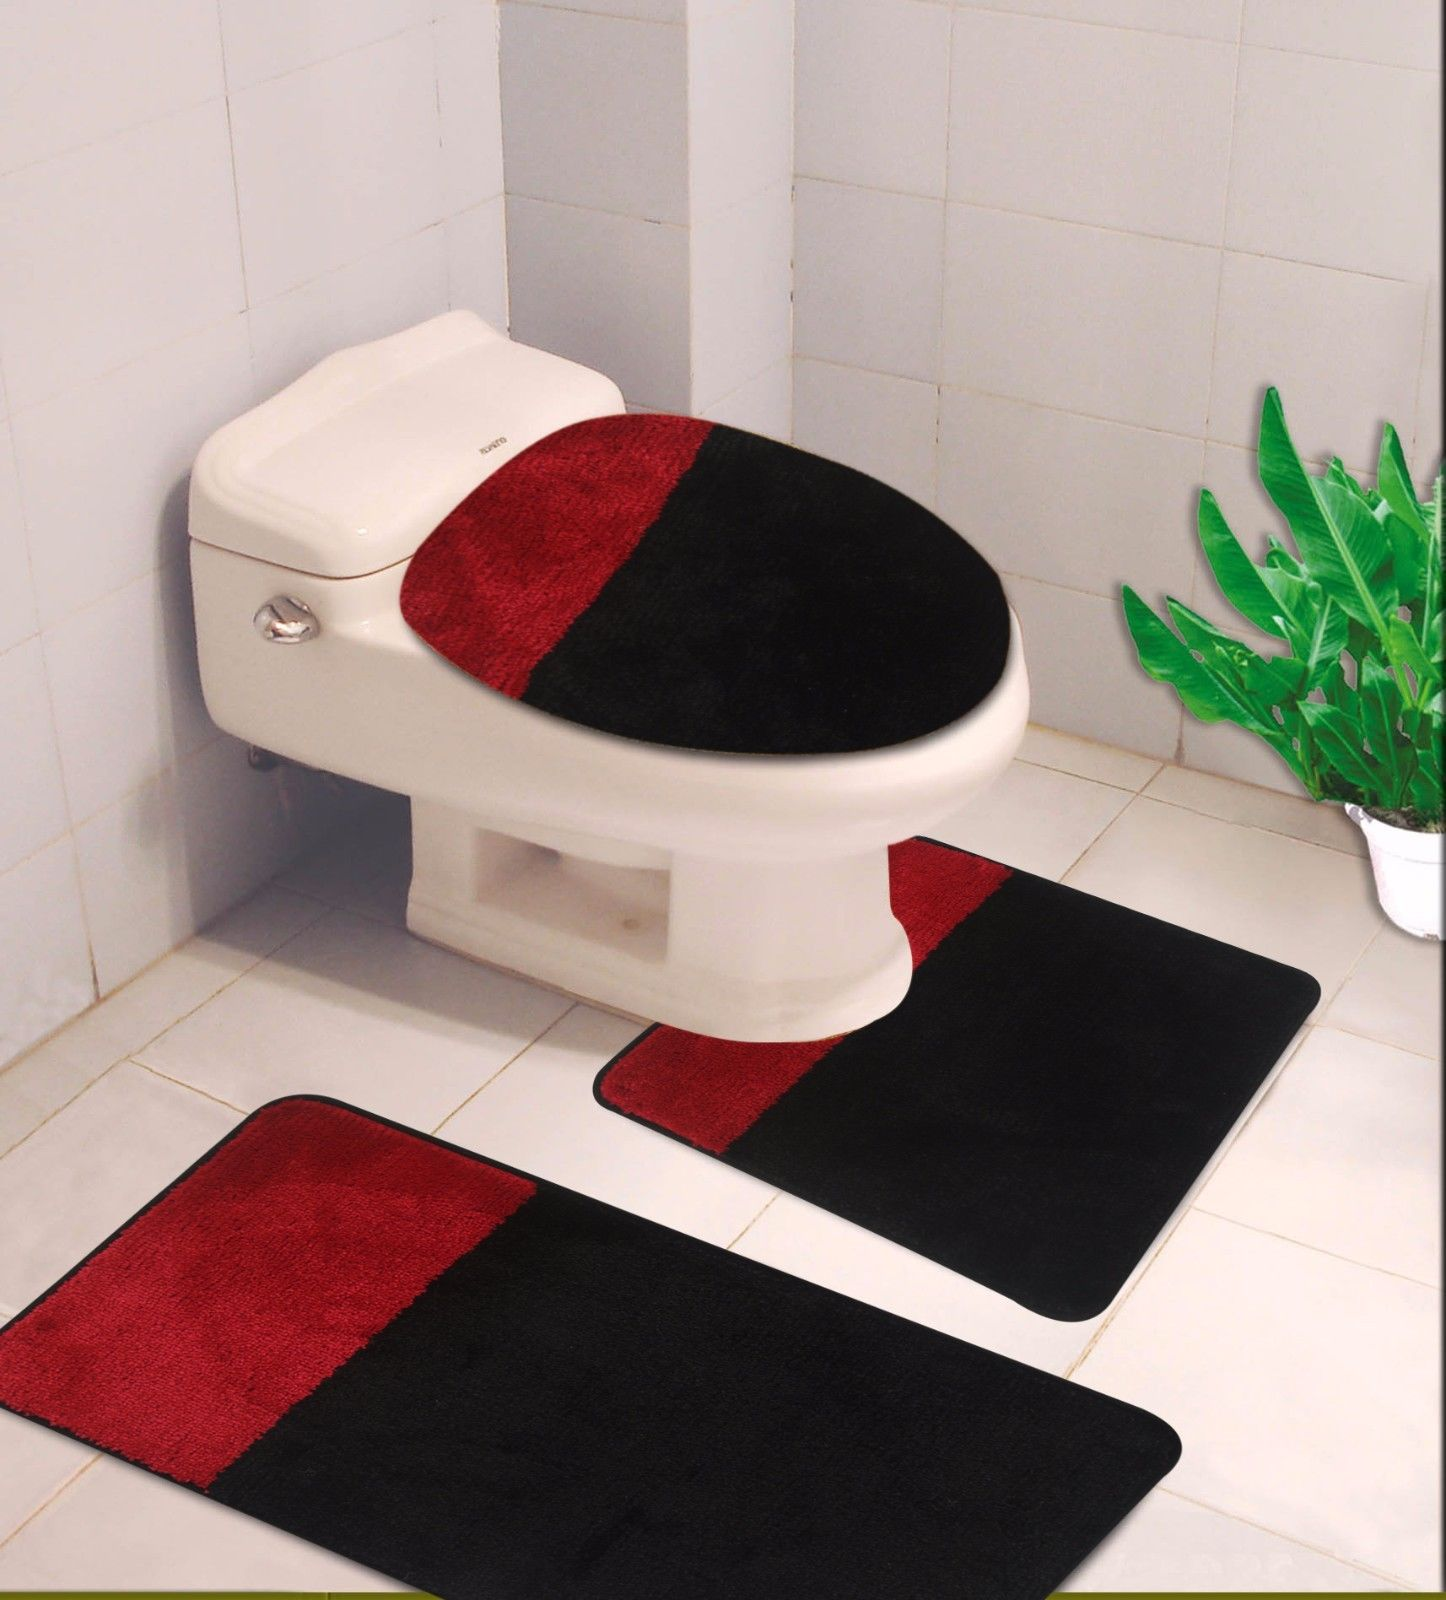 "3-PC (#7) 2 Tone Black/Red HIGH QUALITY Jacquard Bathroom Bath Rug Set Washable Anti Slip Rug 18""x28"", Contour Mat 18""x18"" and Toilet Seat Lid Cover 18""x19"" with Non-Skid Rubber Back"